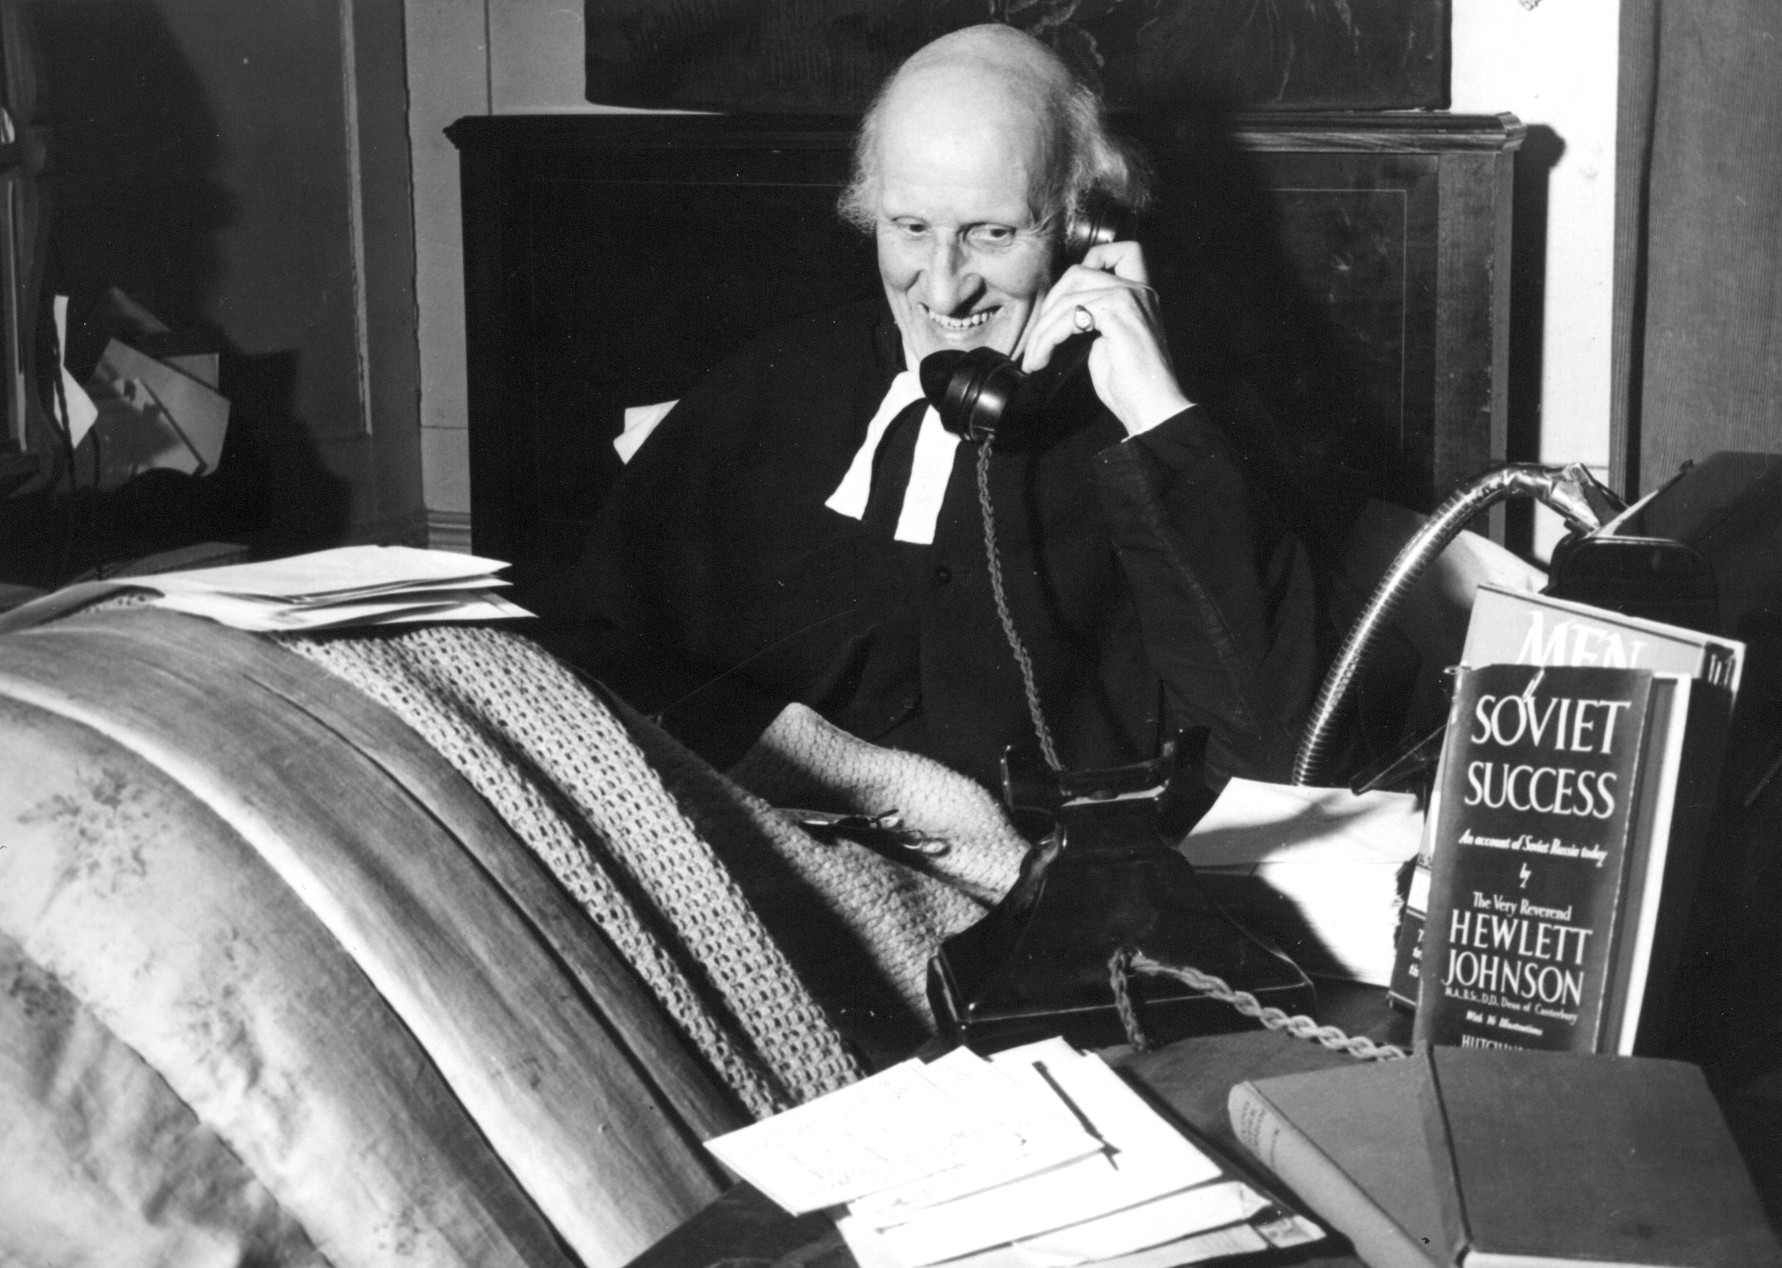 Dean Hewlett Johnson smiling whilst holding a telephone; one of his published books is beside him.